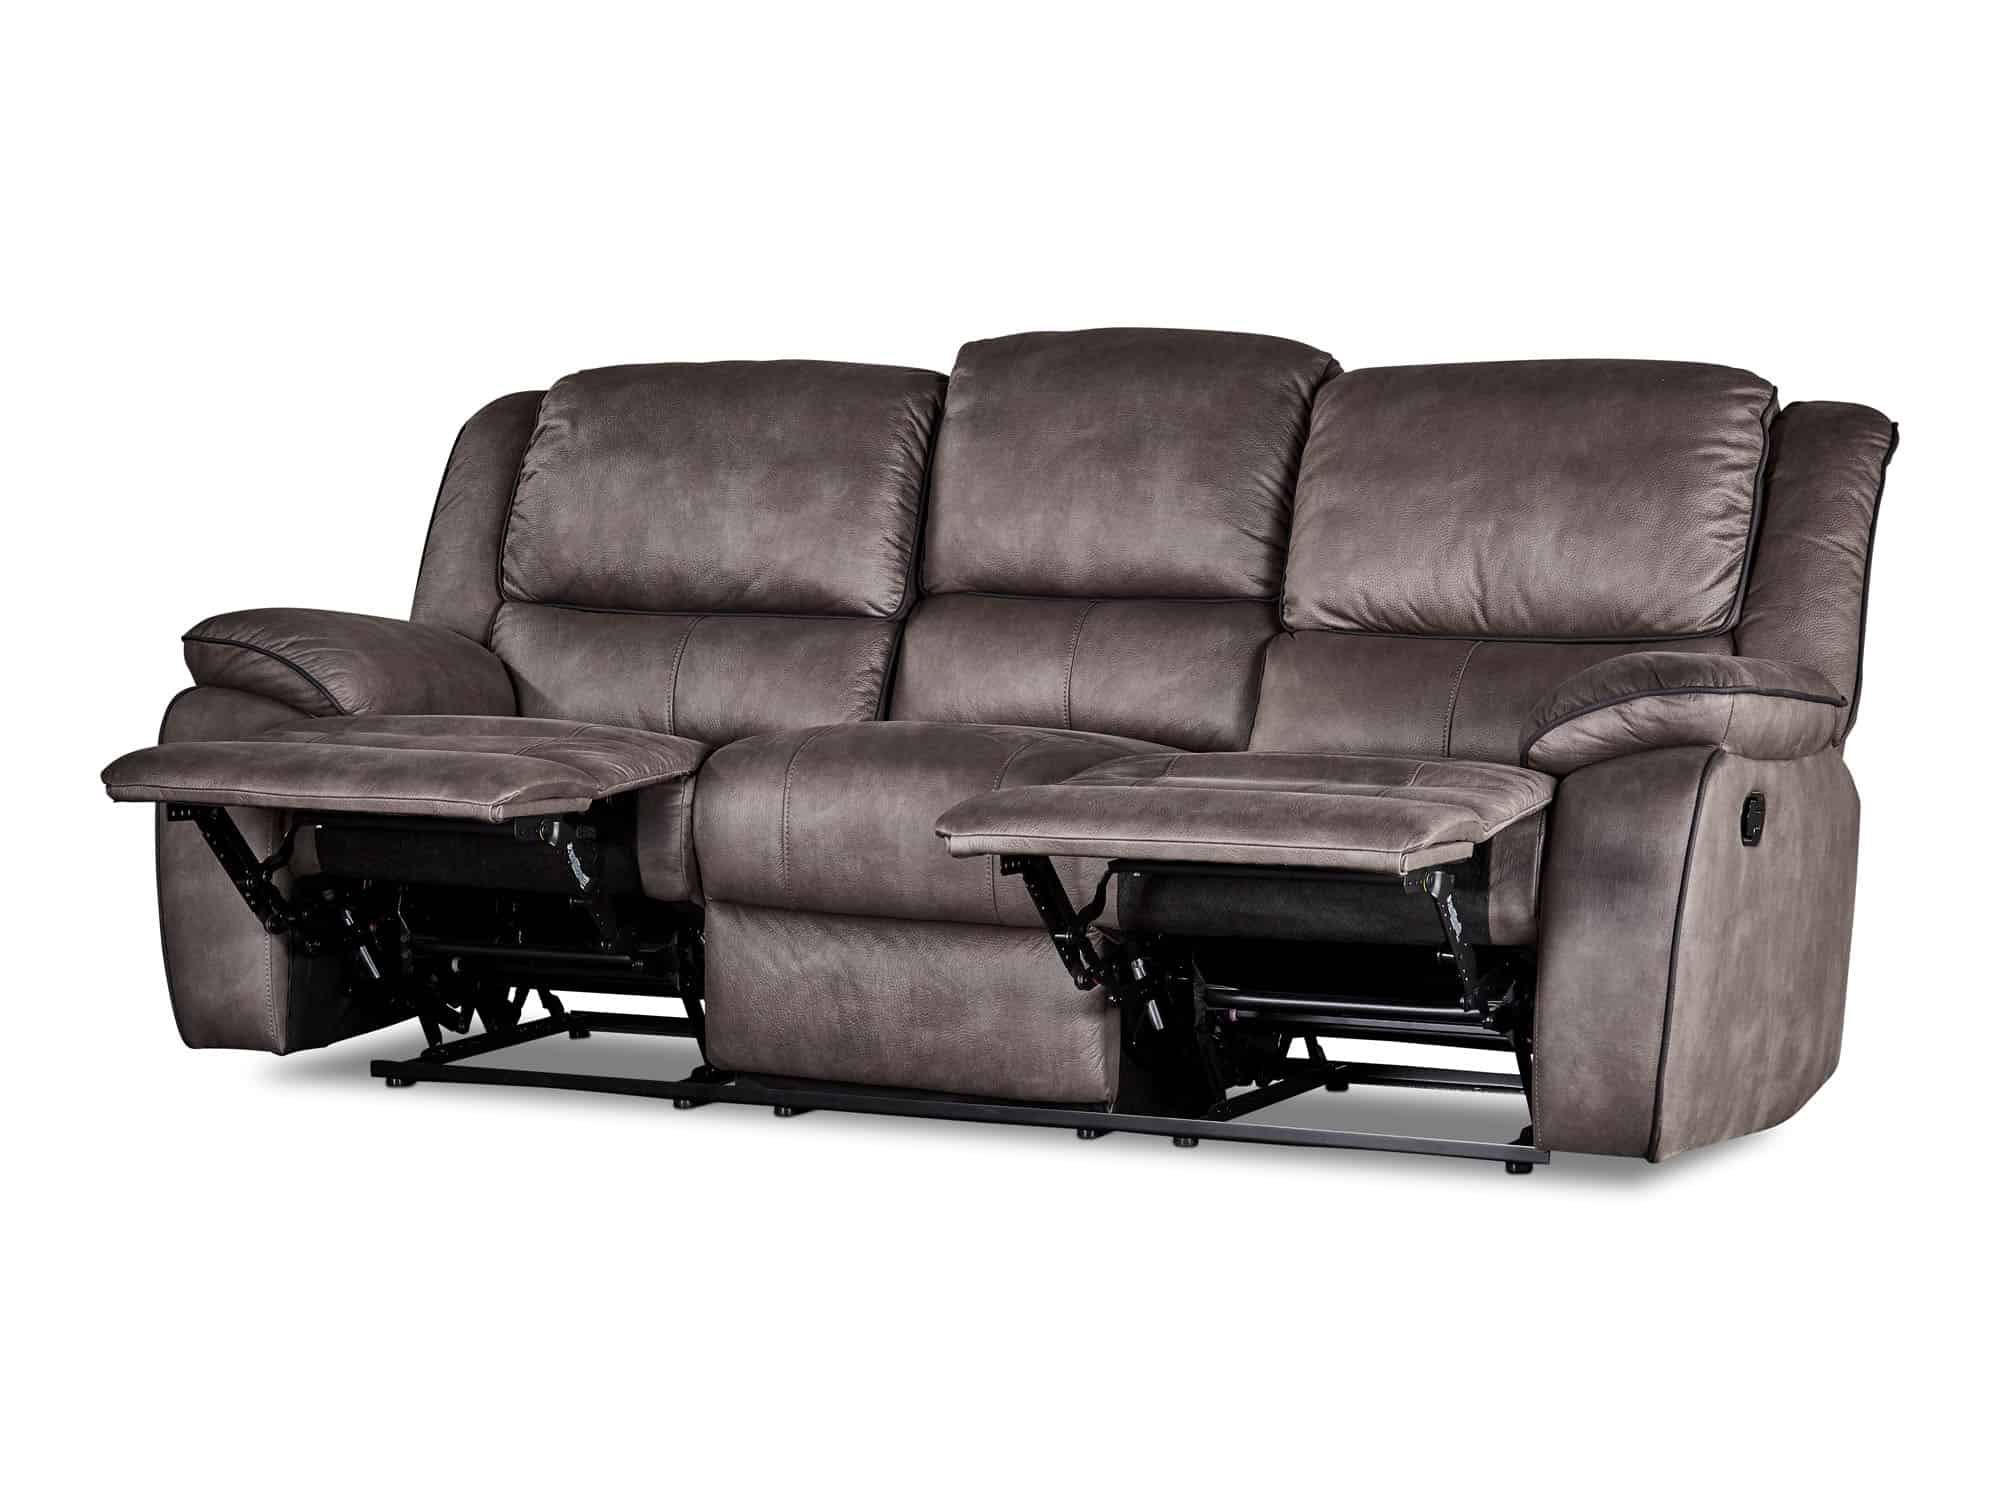 Sofa Lounge Nz Falcon Big Save Furniture